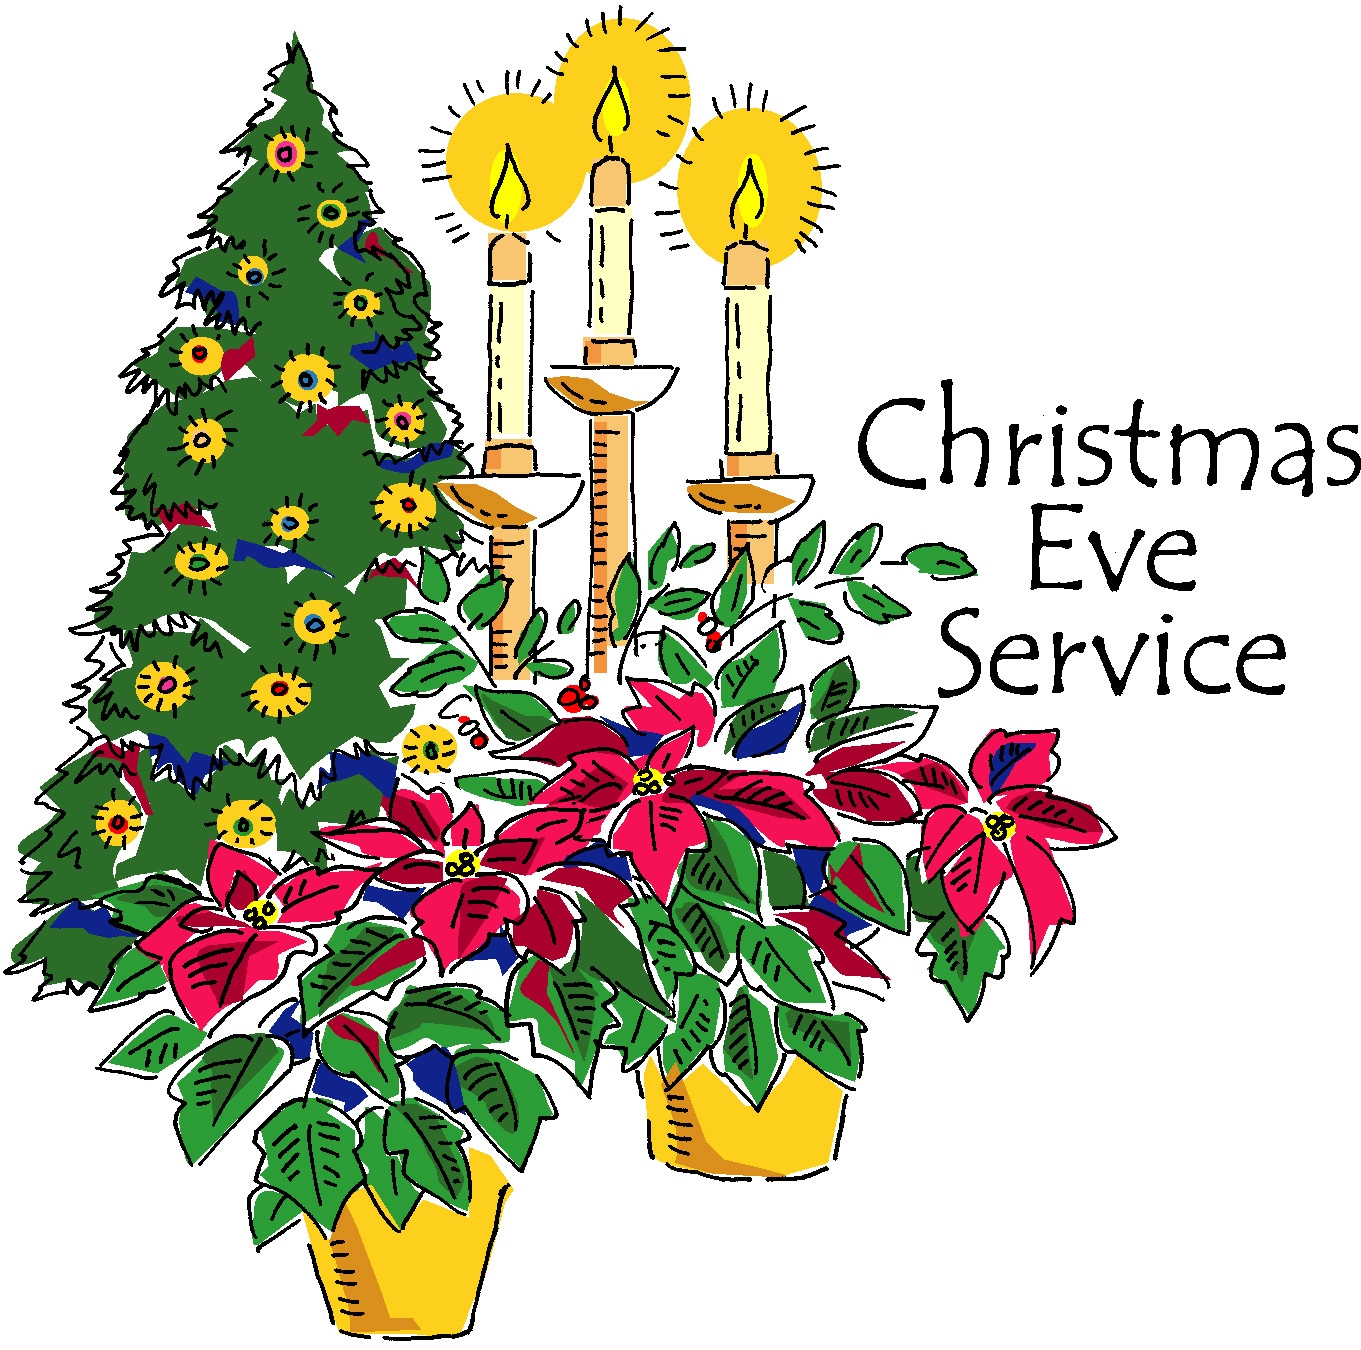 Christmas Eve Clipart Free-Christmas Eve Clipart Free-10